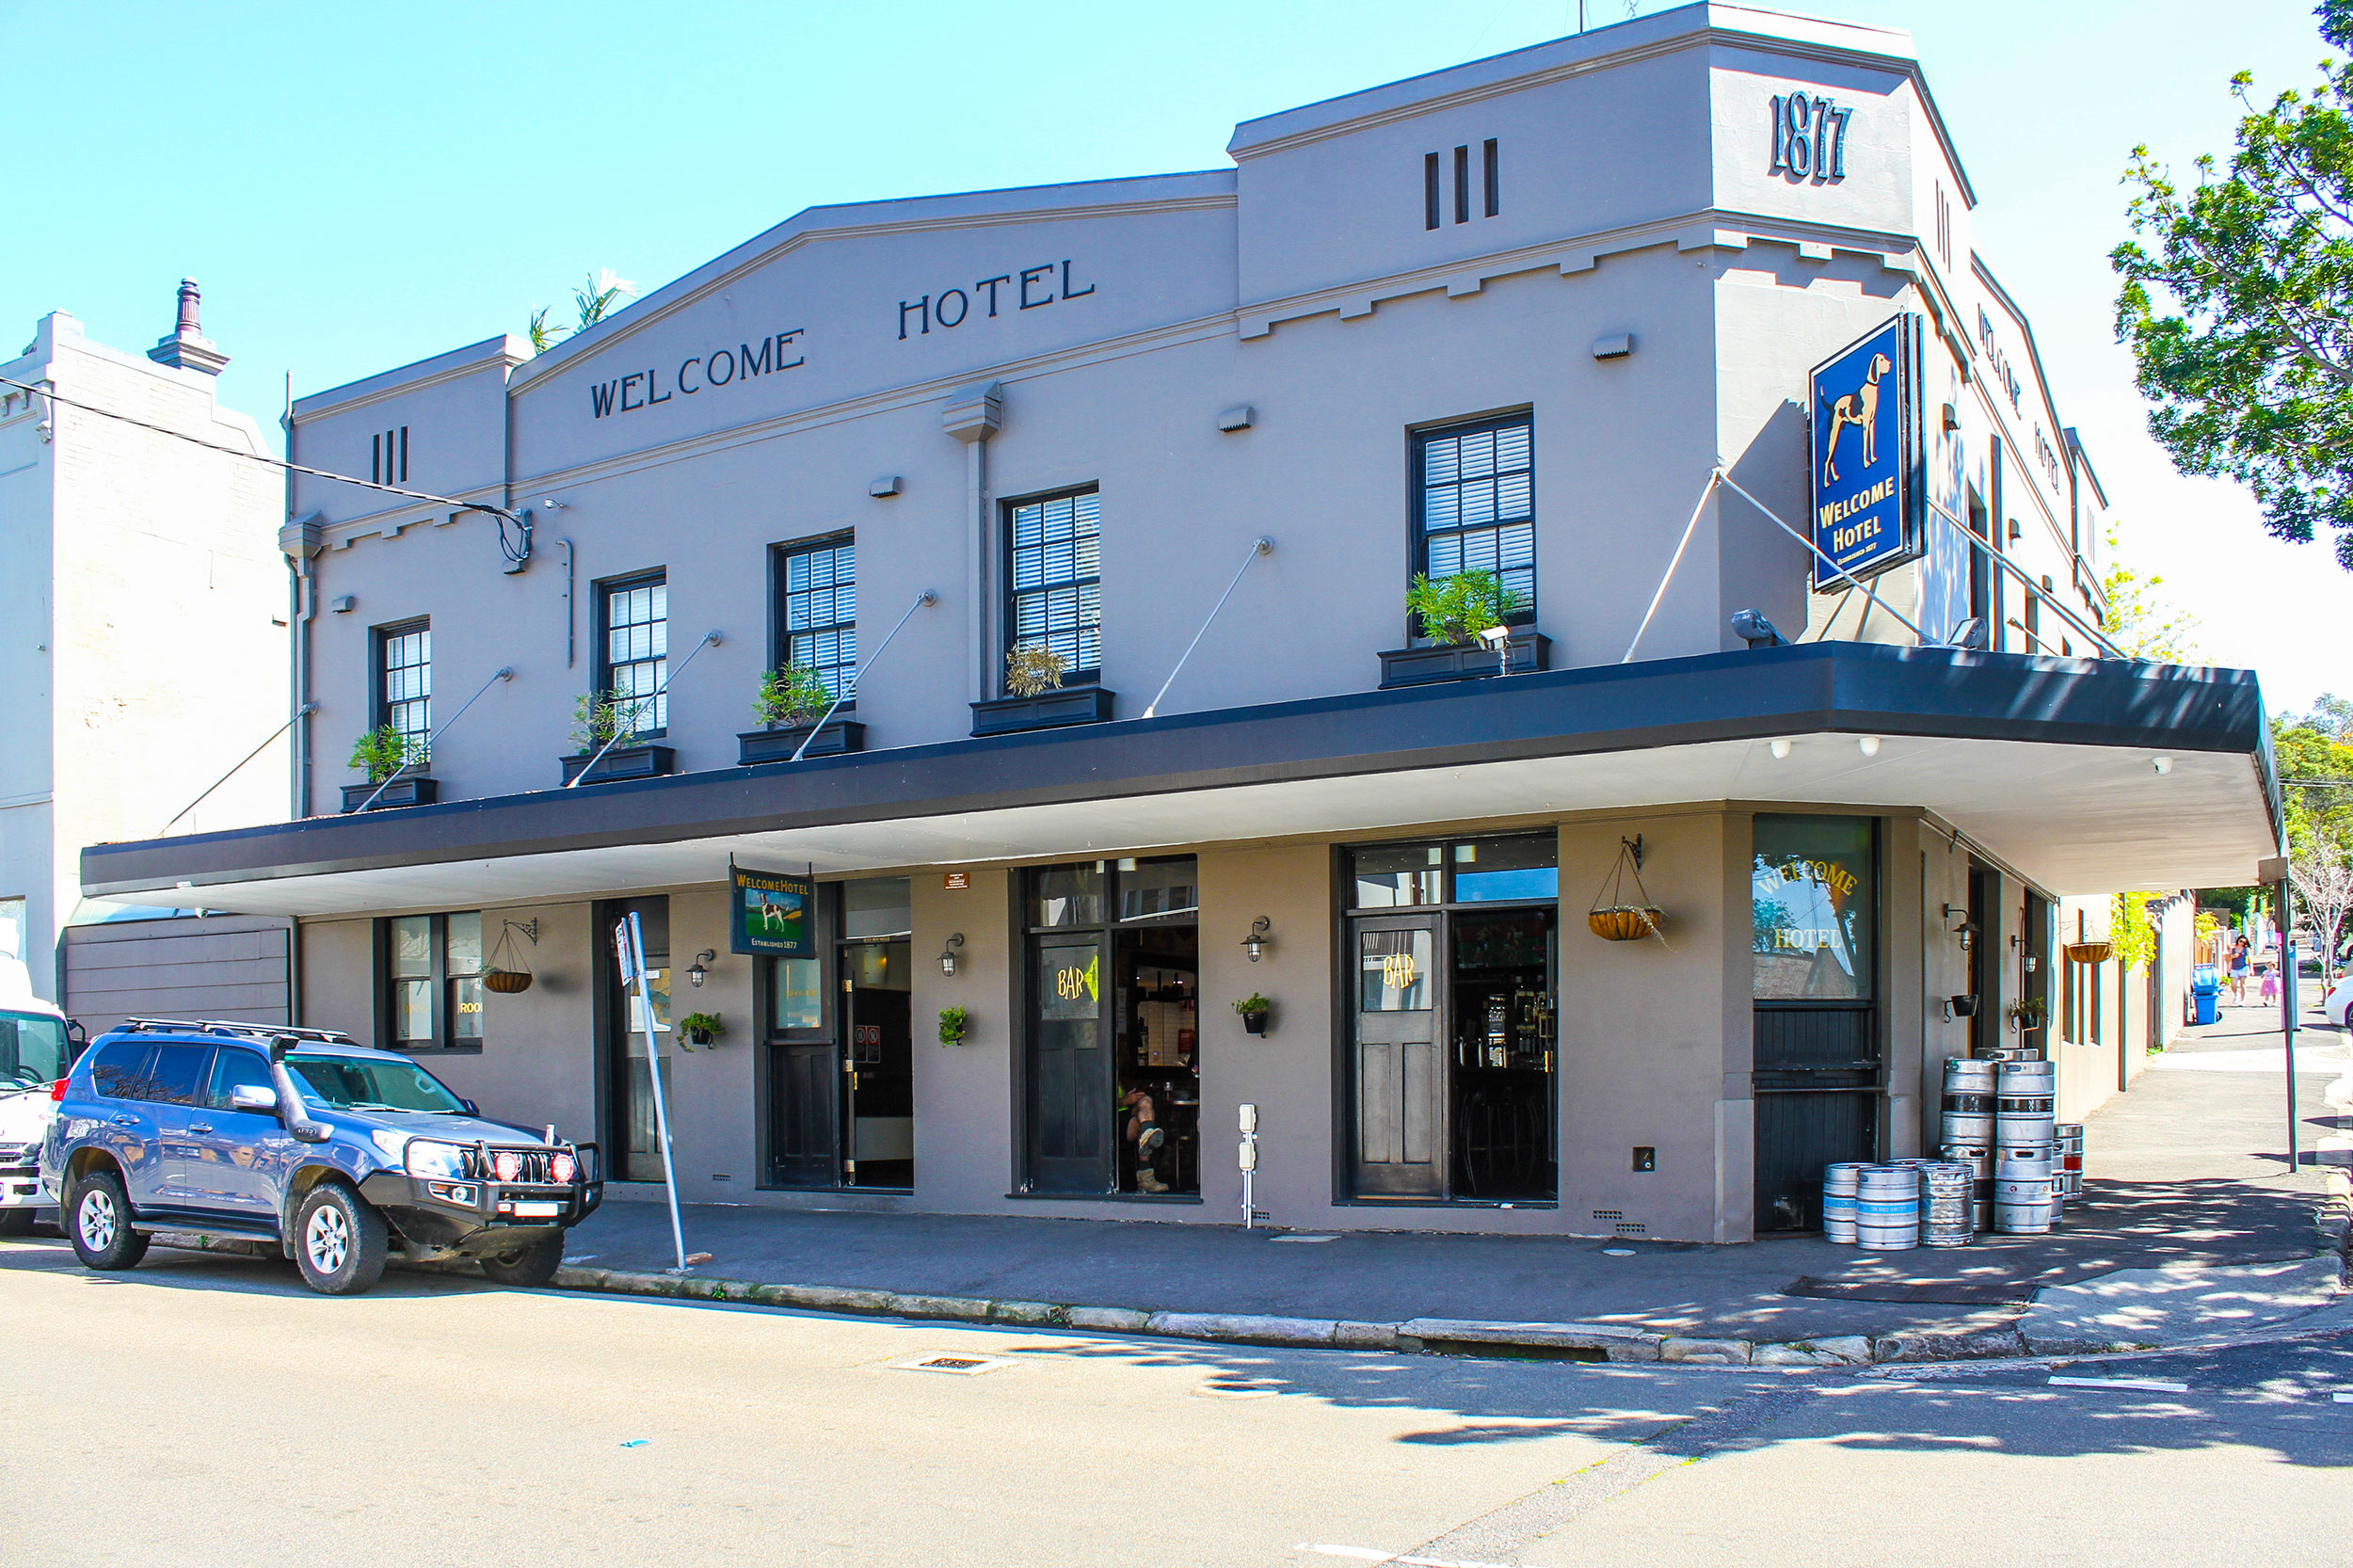 Name : The Welcome Hotel - Sydney